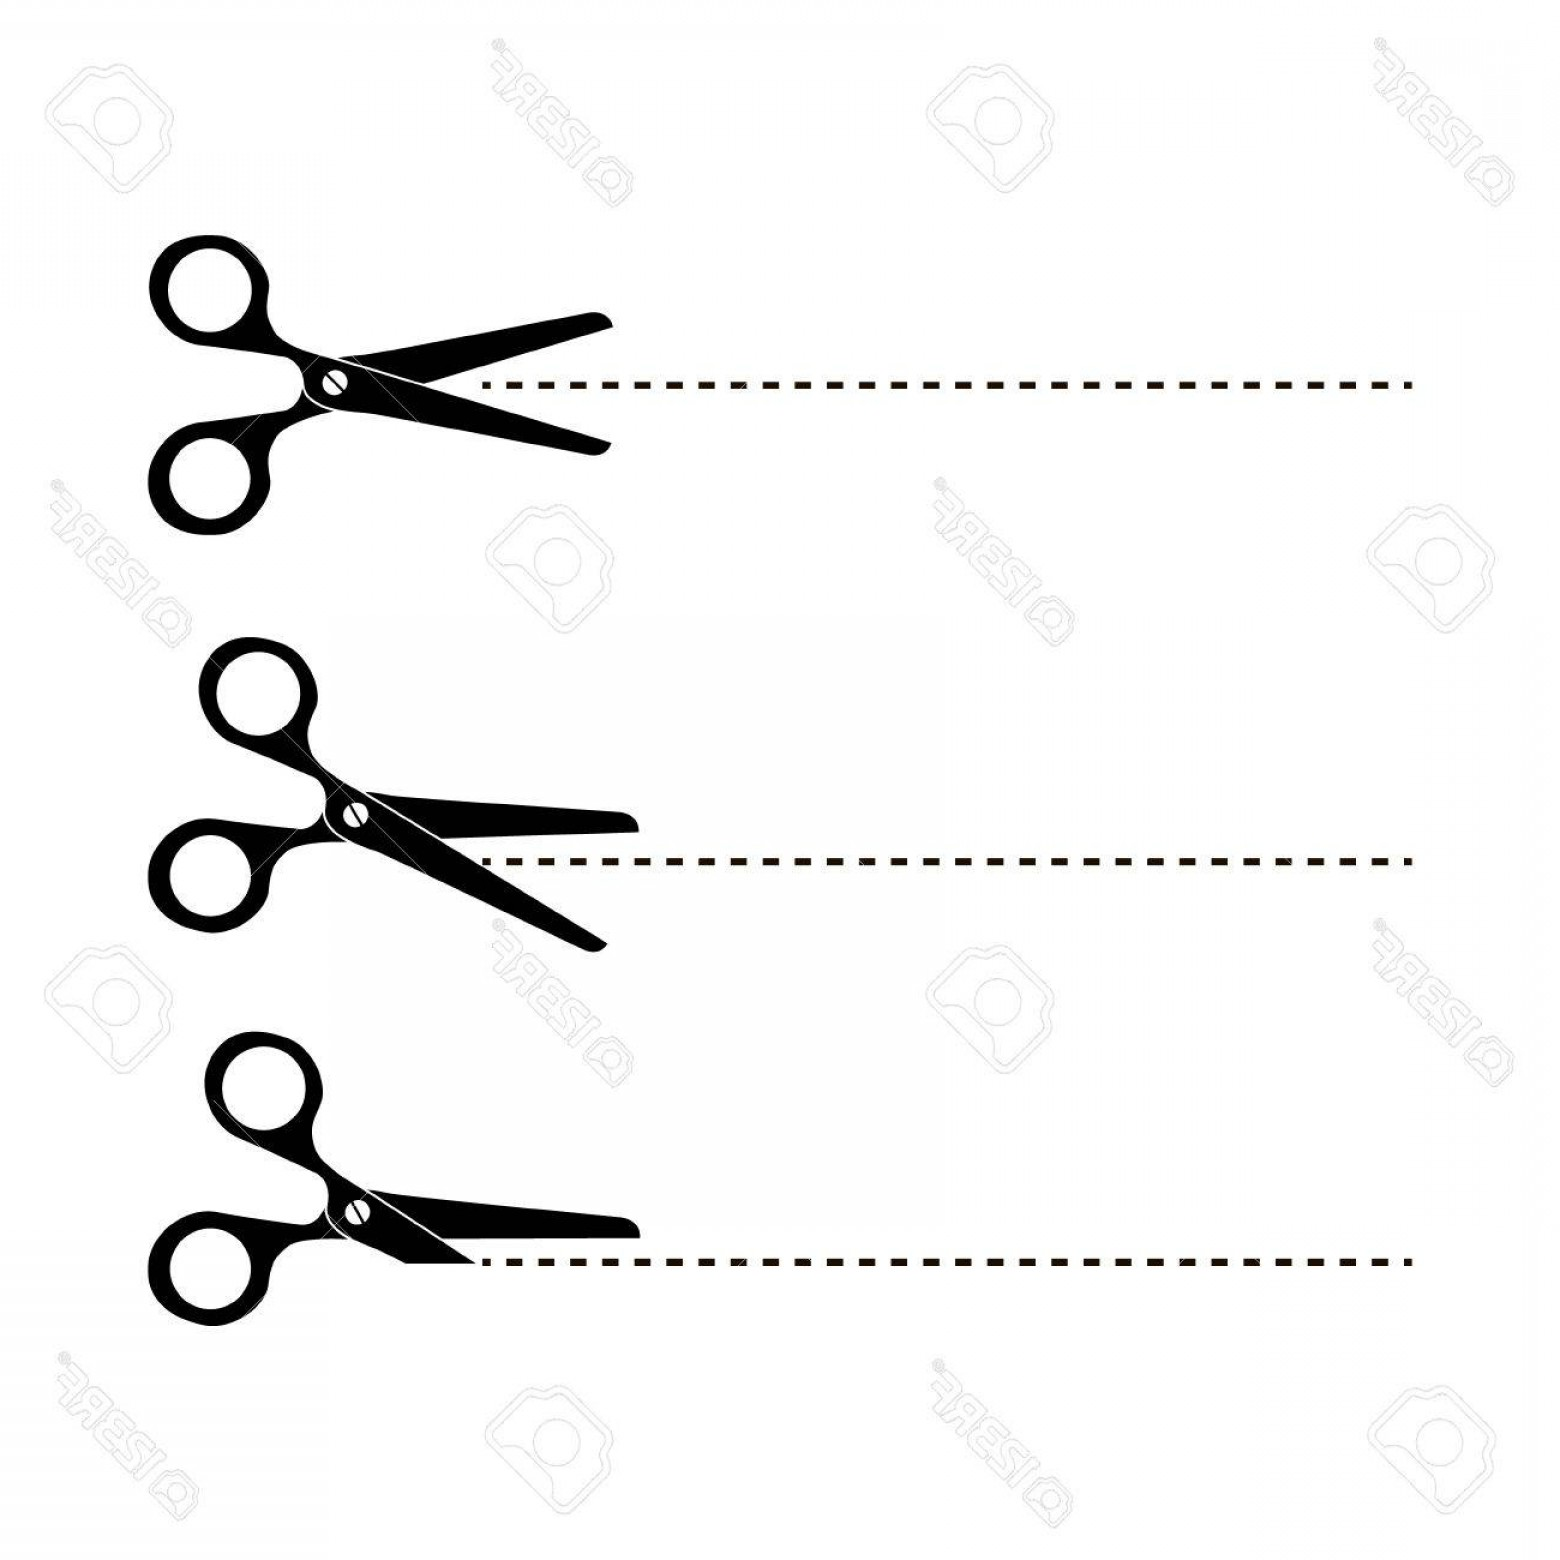 Cut Symbol Vector: Photostock Vector Cut Here Symbol Scissors And Dotted Line Cut Here Scissors